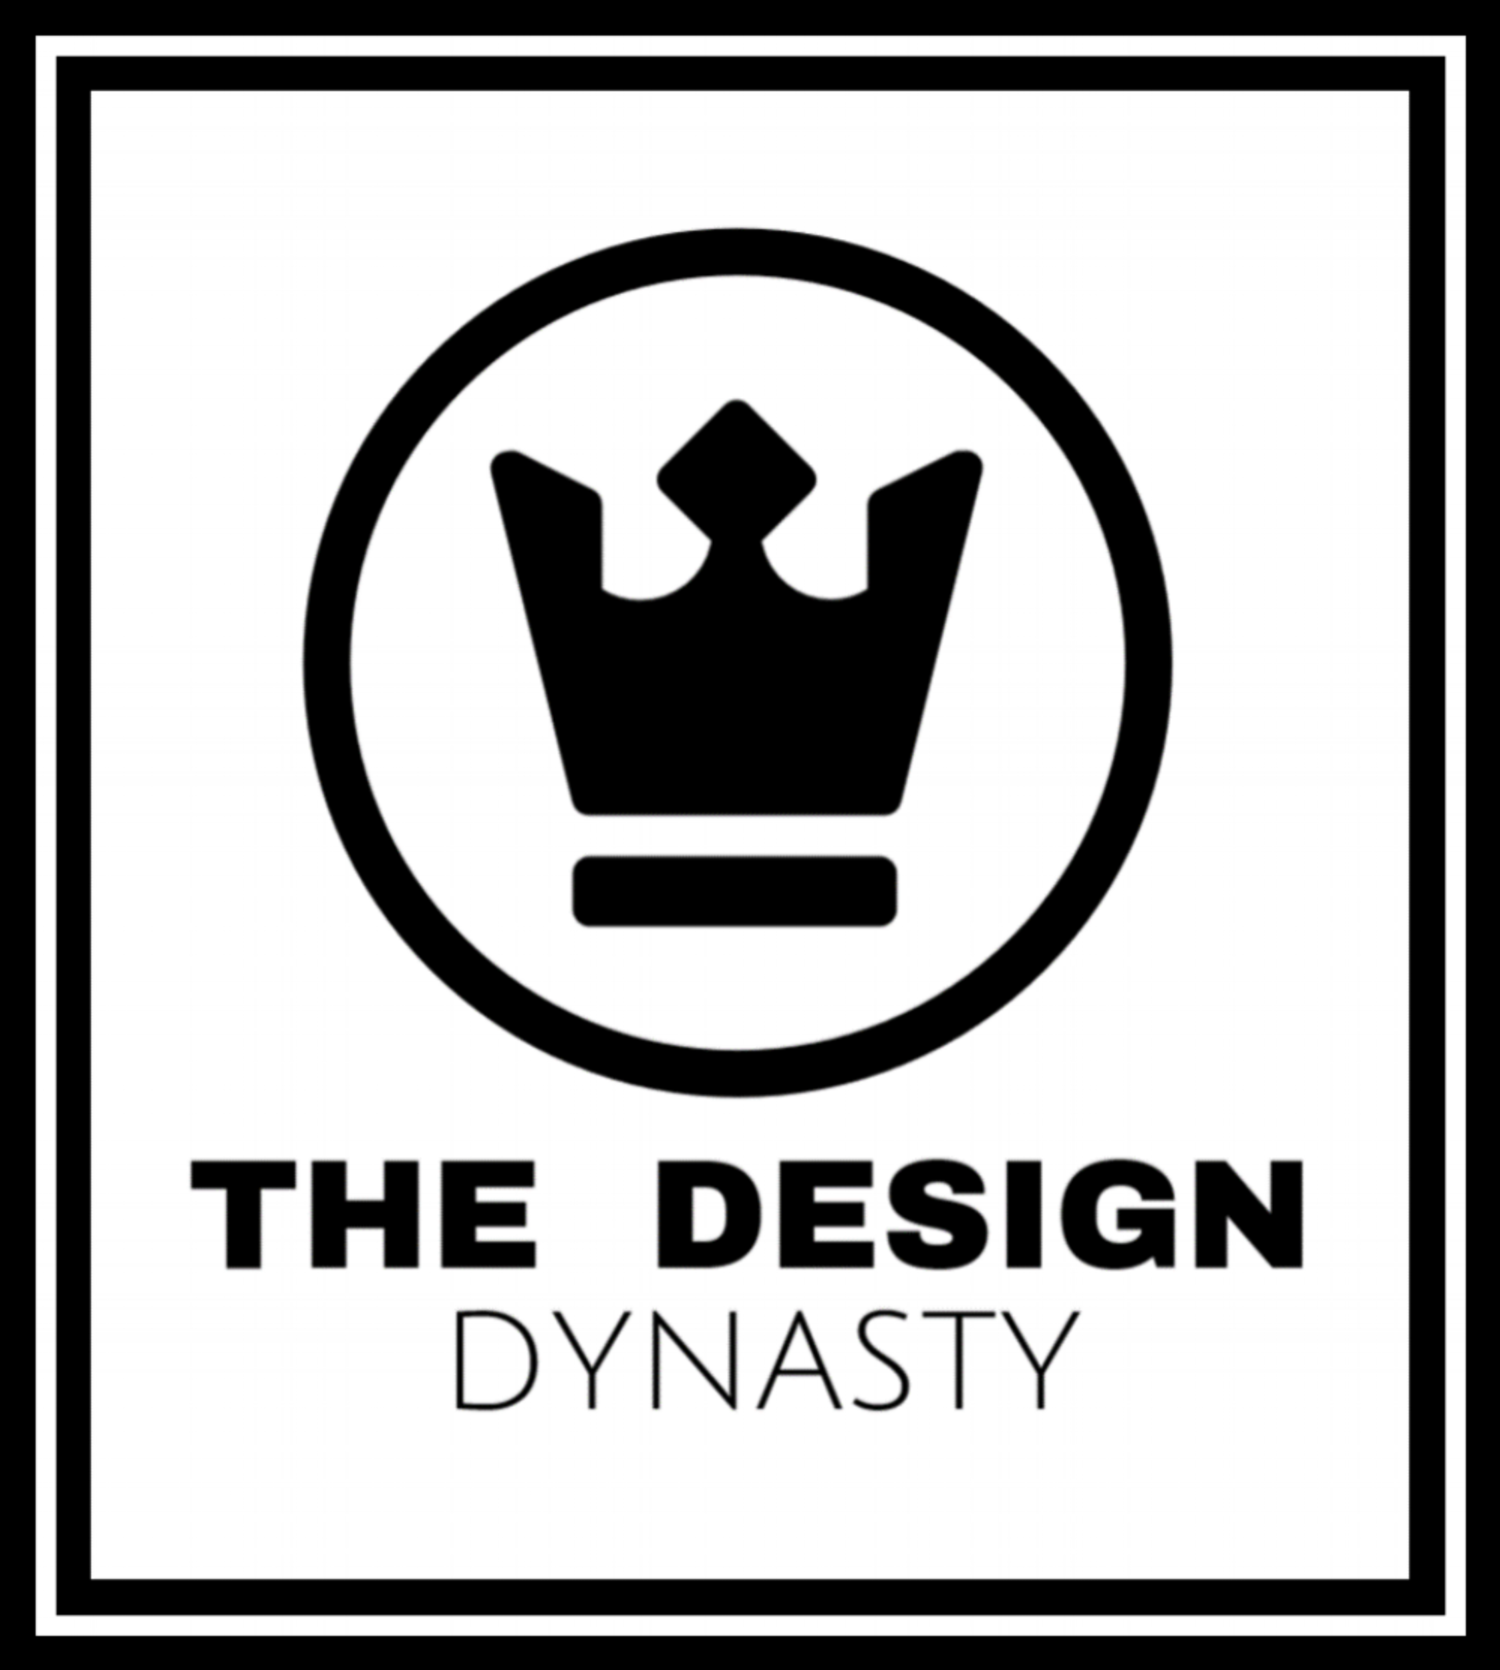 The Design Dynasty